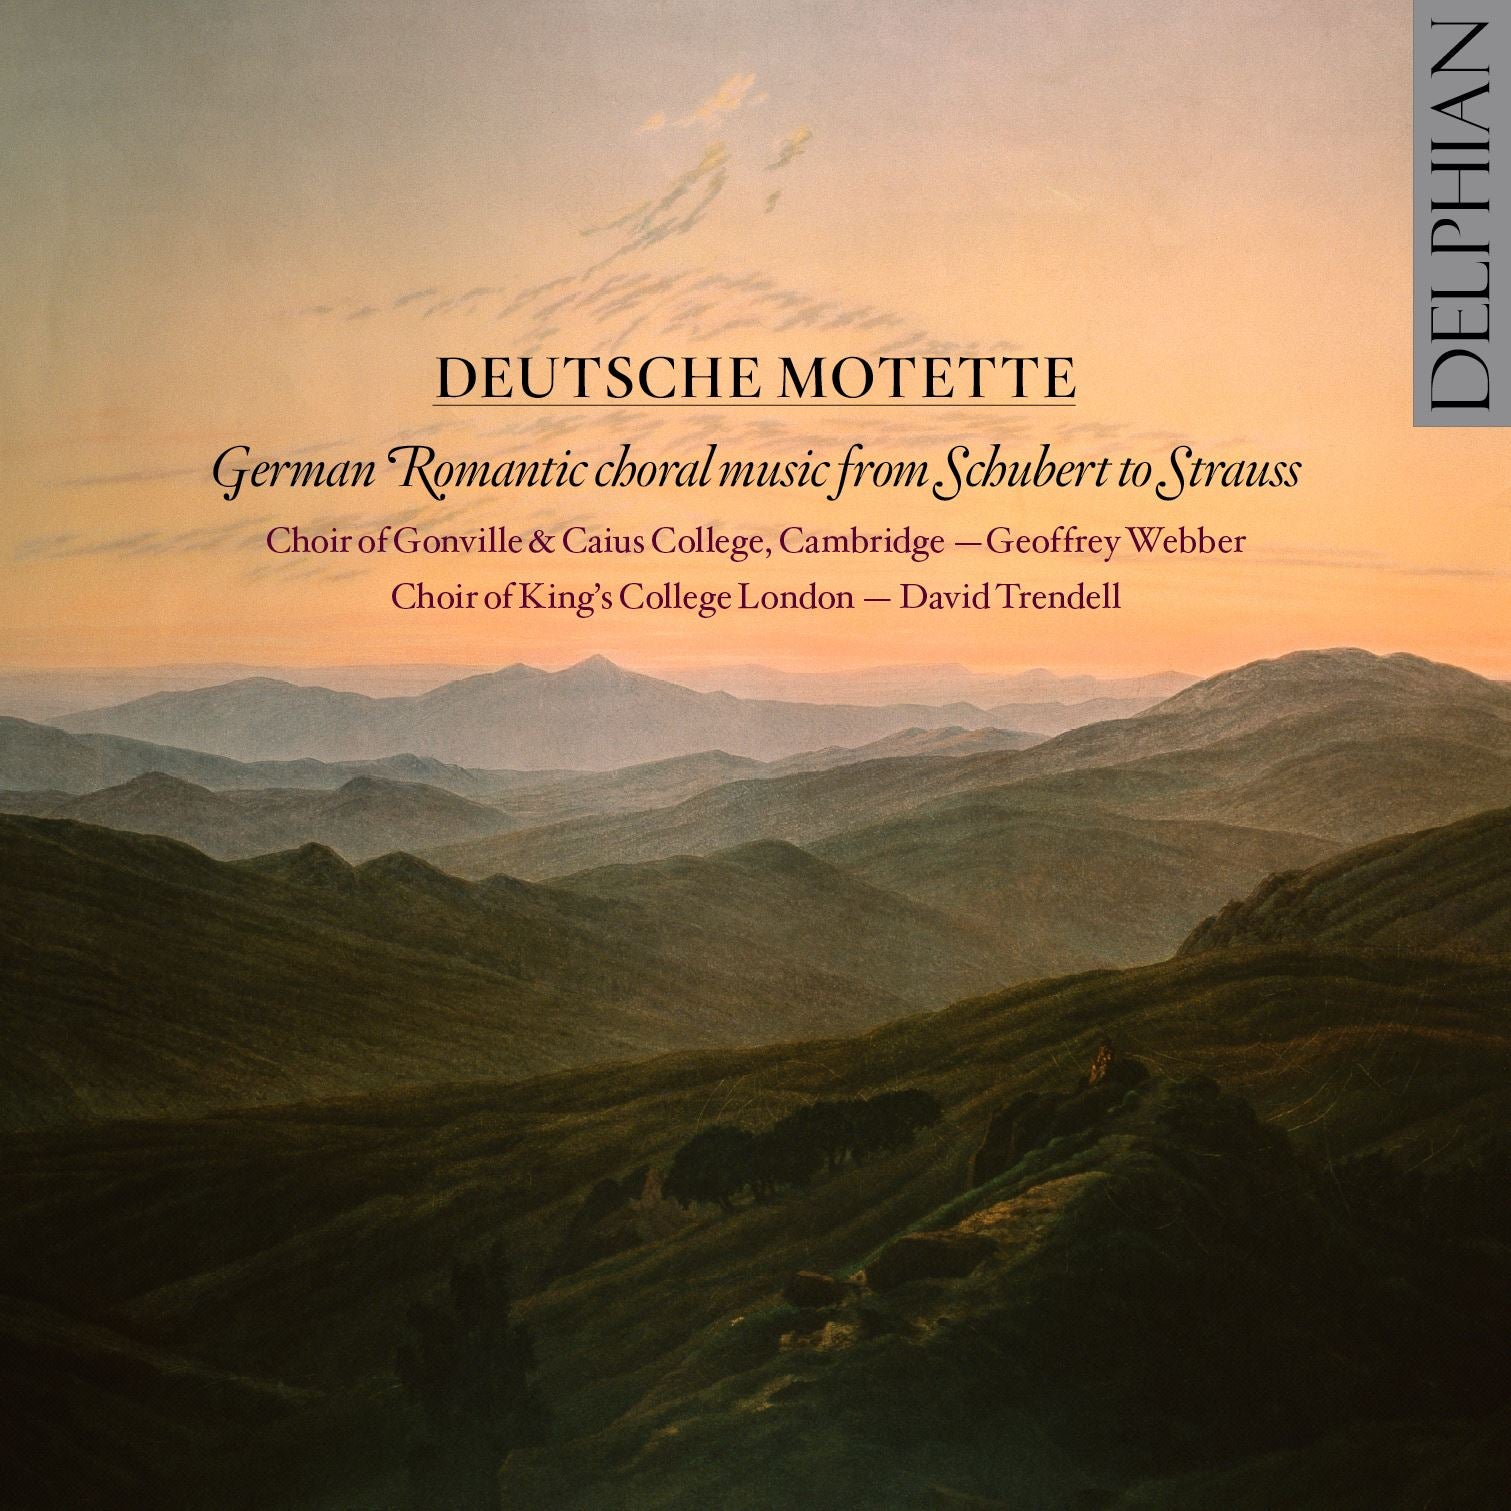 Deutsche Motette CD Delphian Records